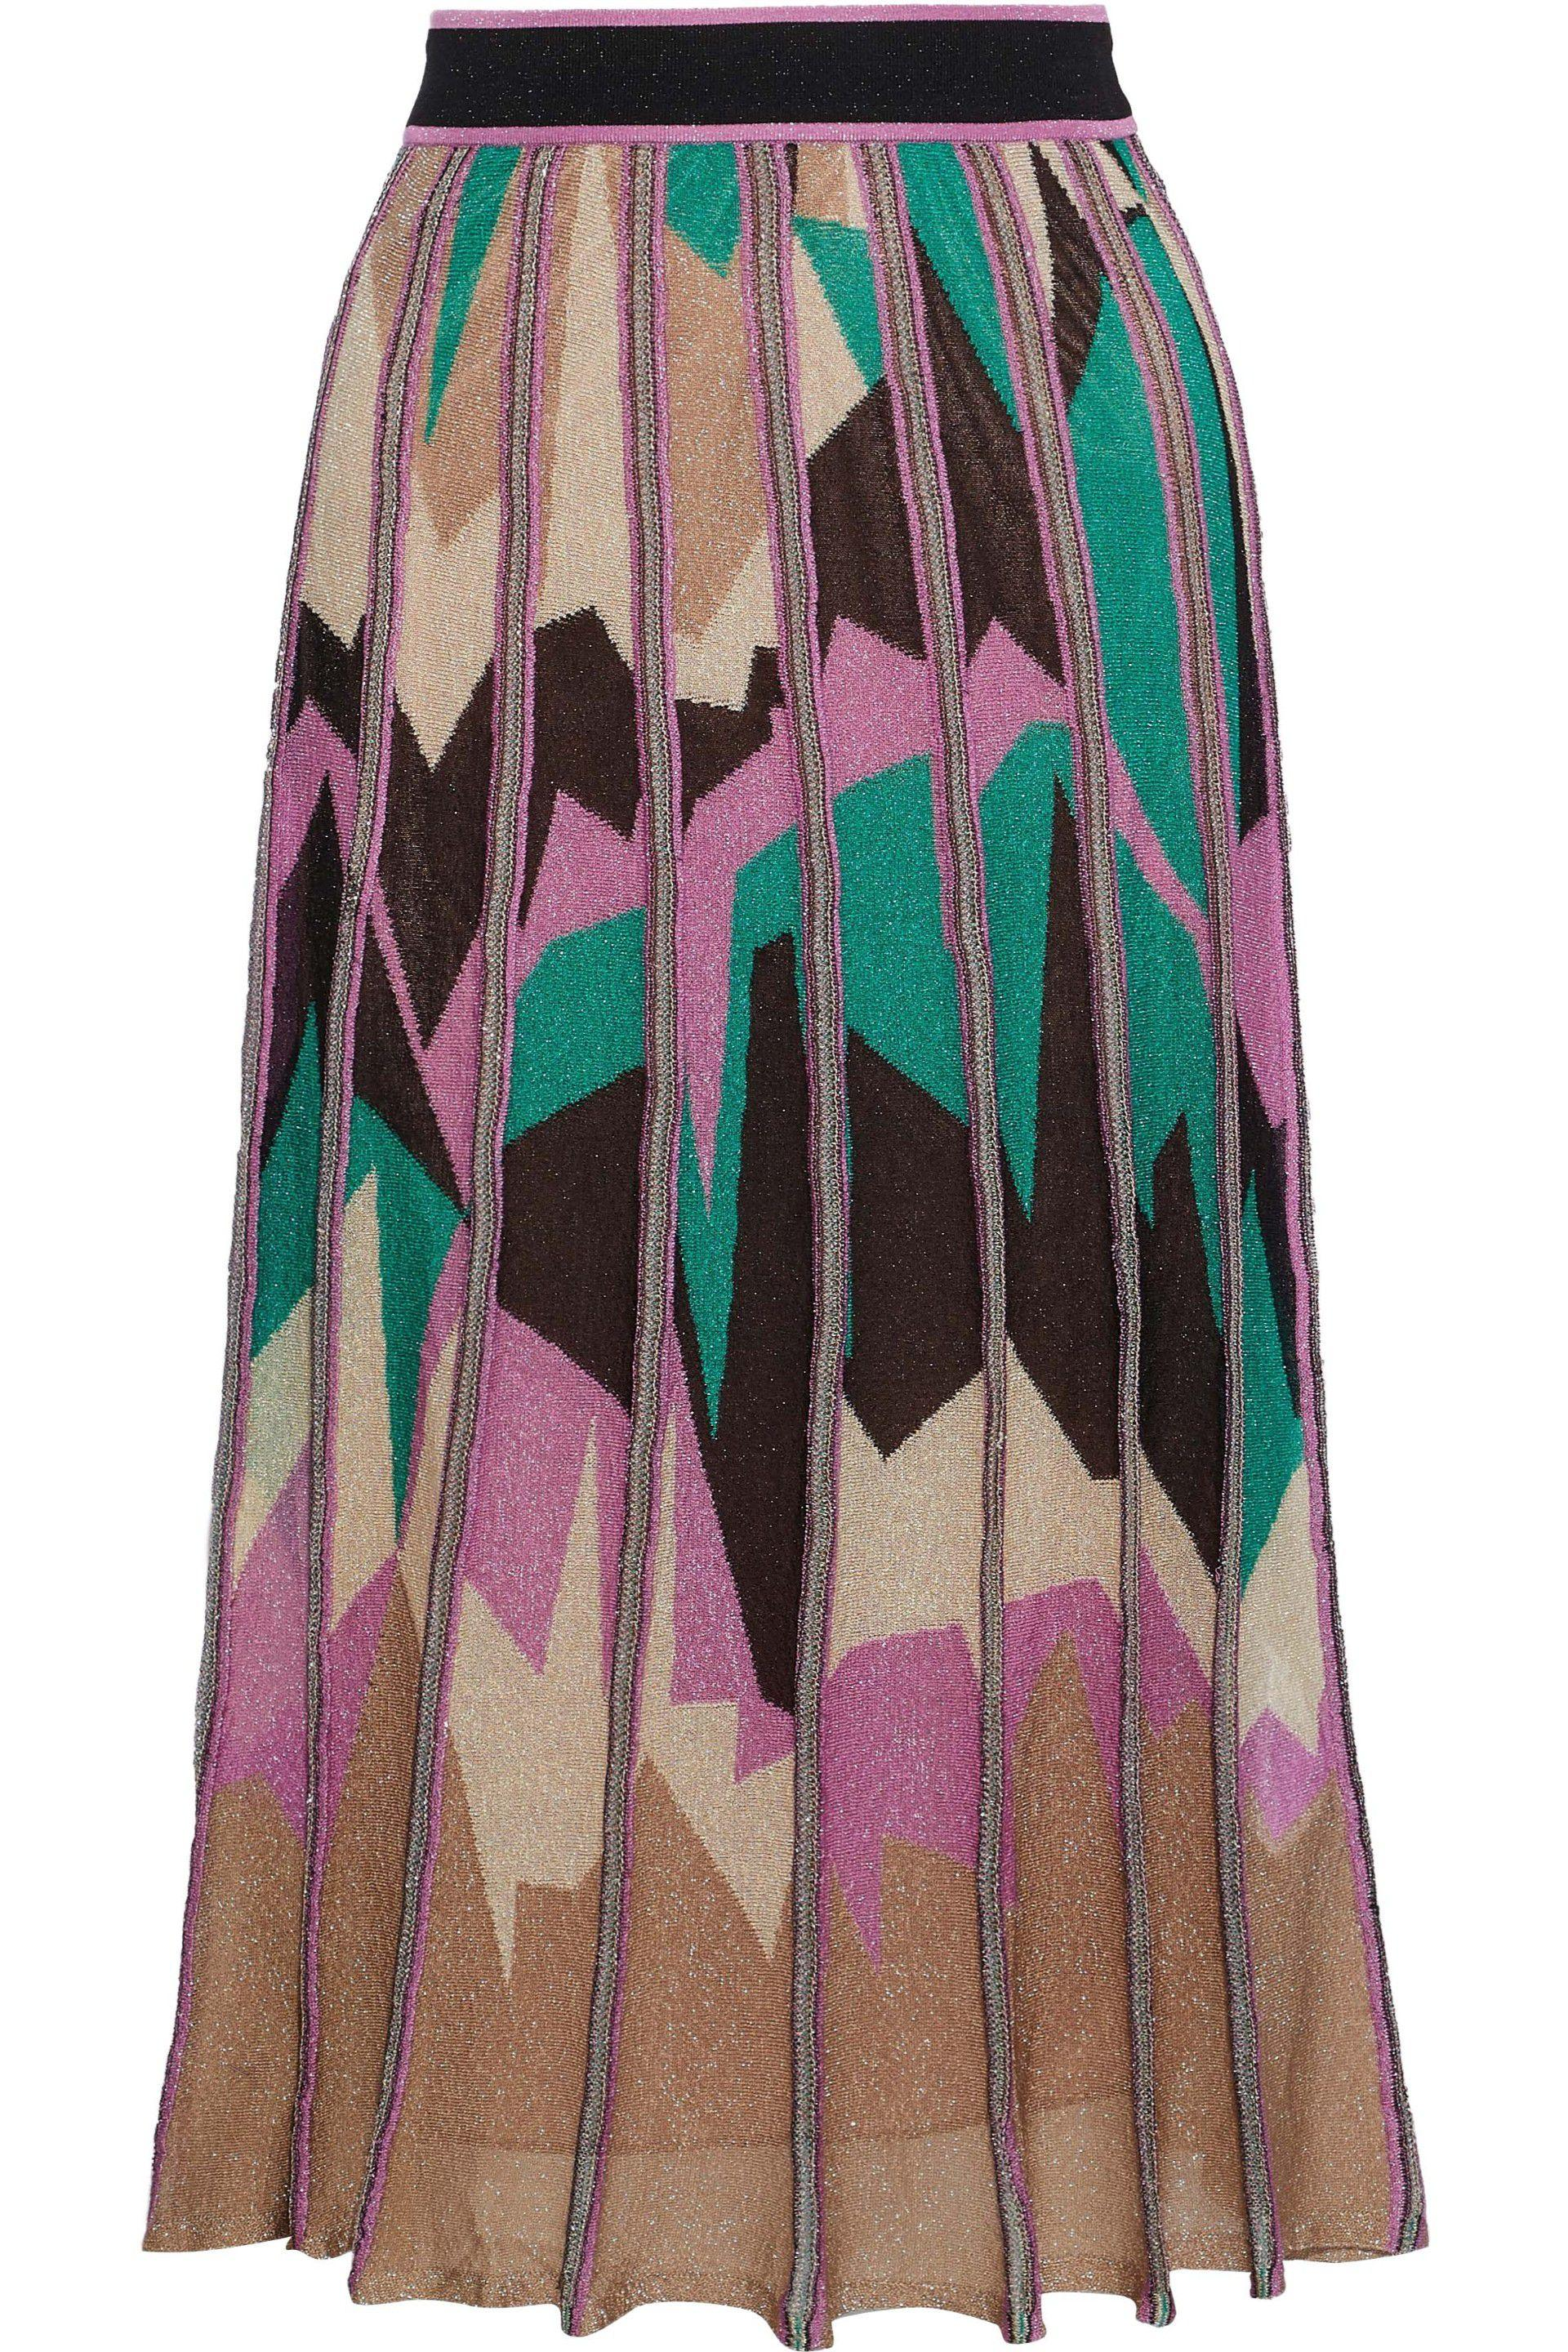 M Missoni. Women s Pink Woman Metallic Intarsia-knit Midi Skirt Multicolor 1f5df1f09